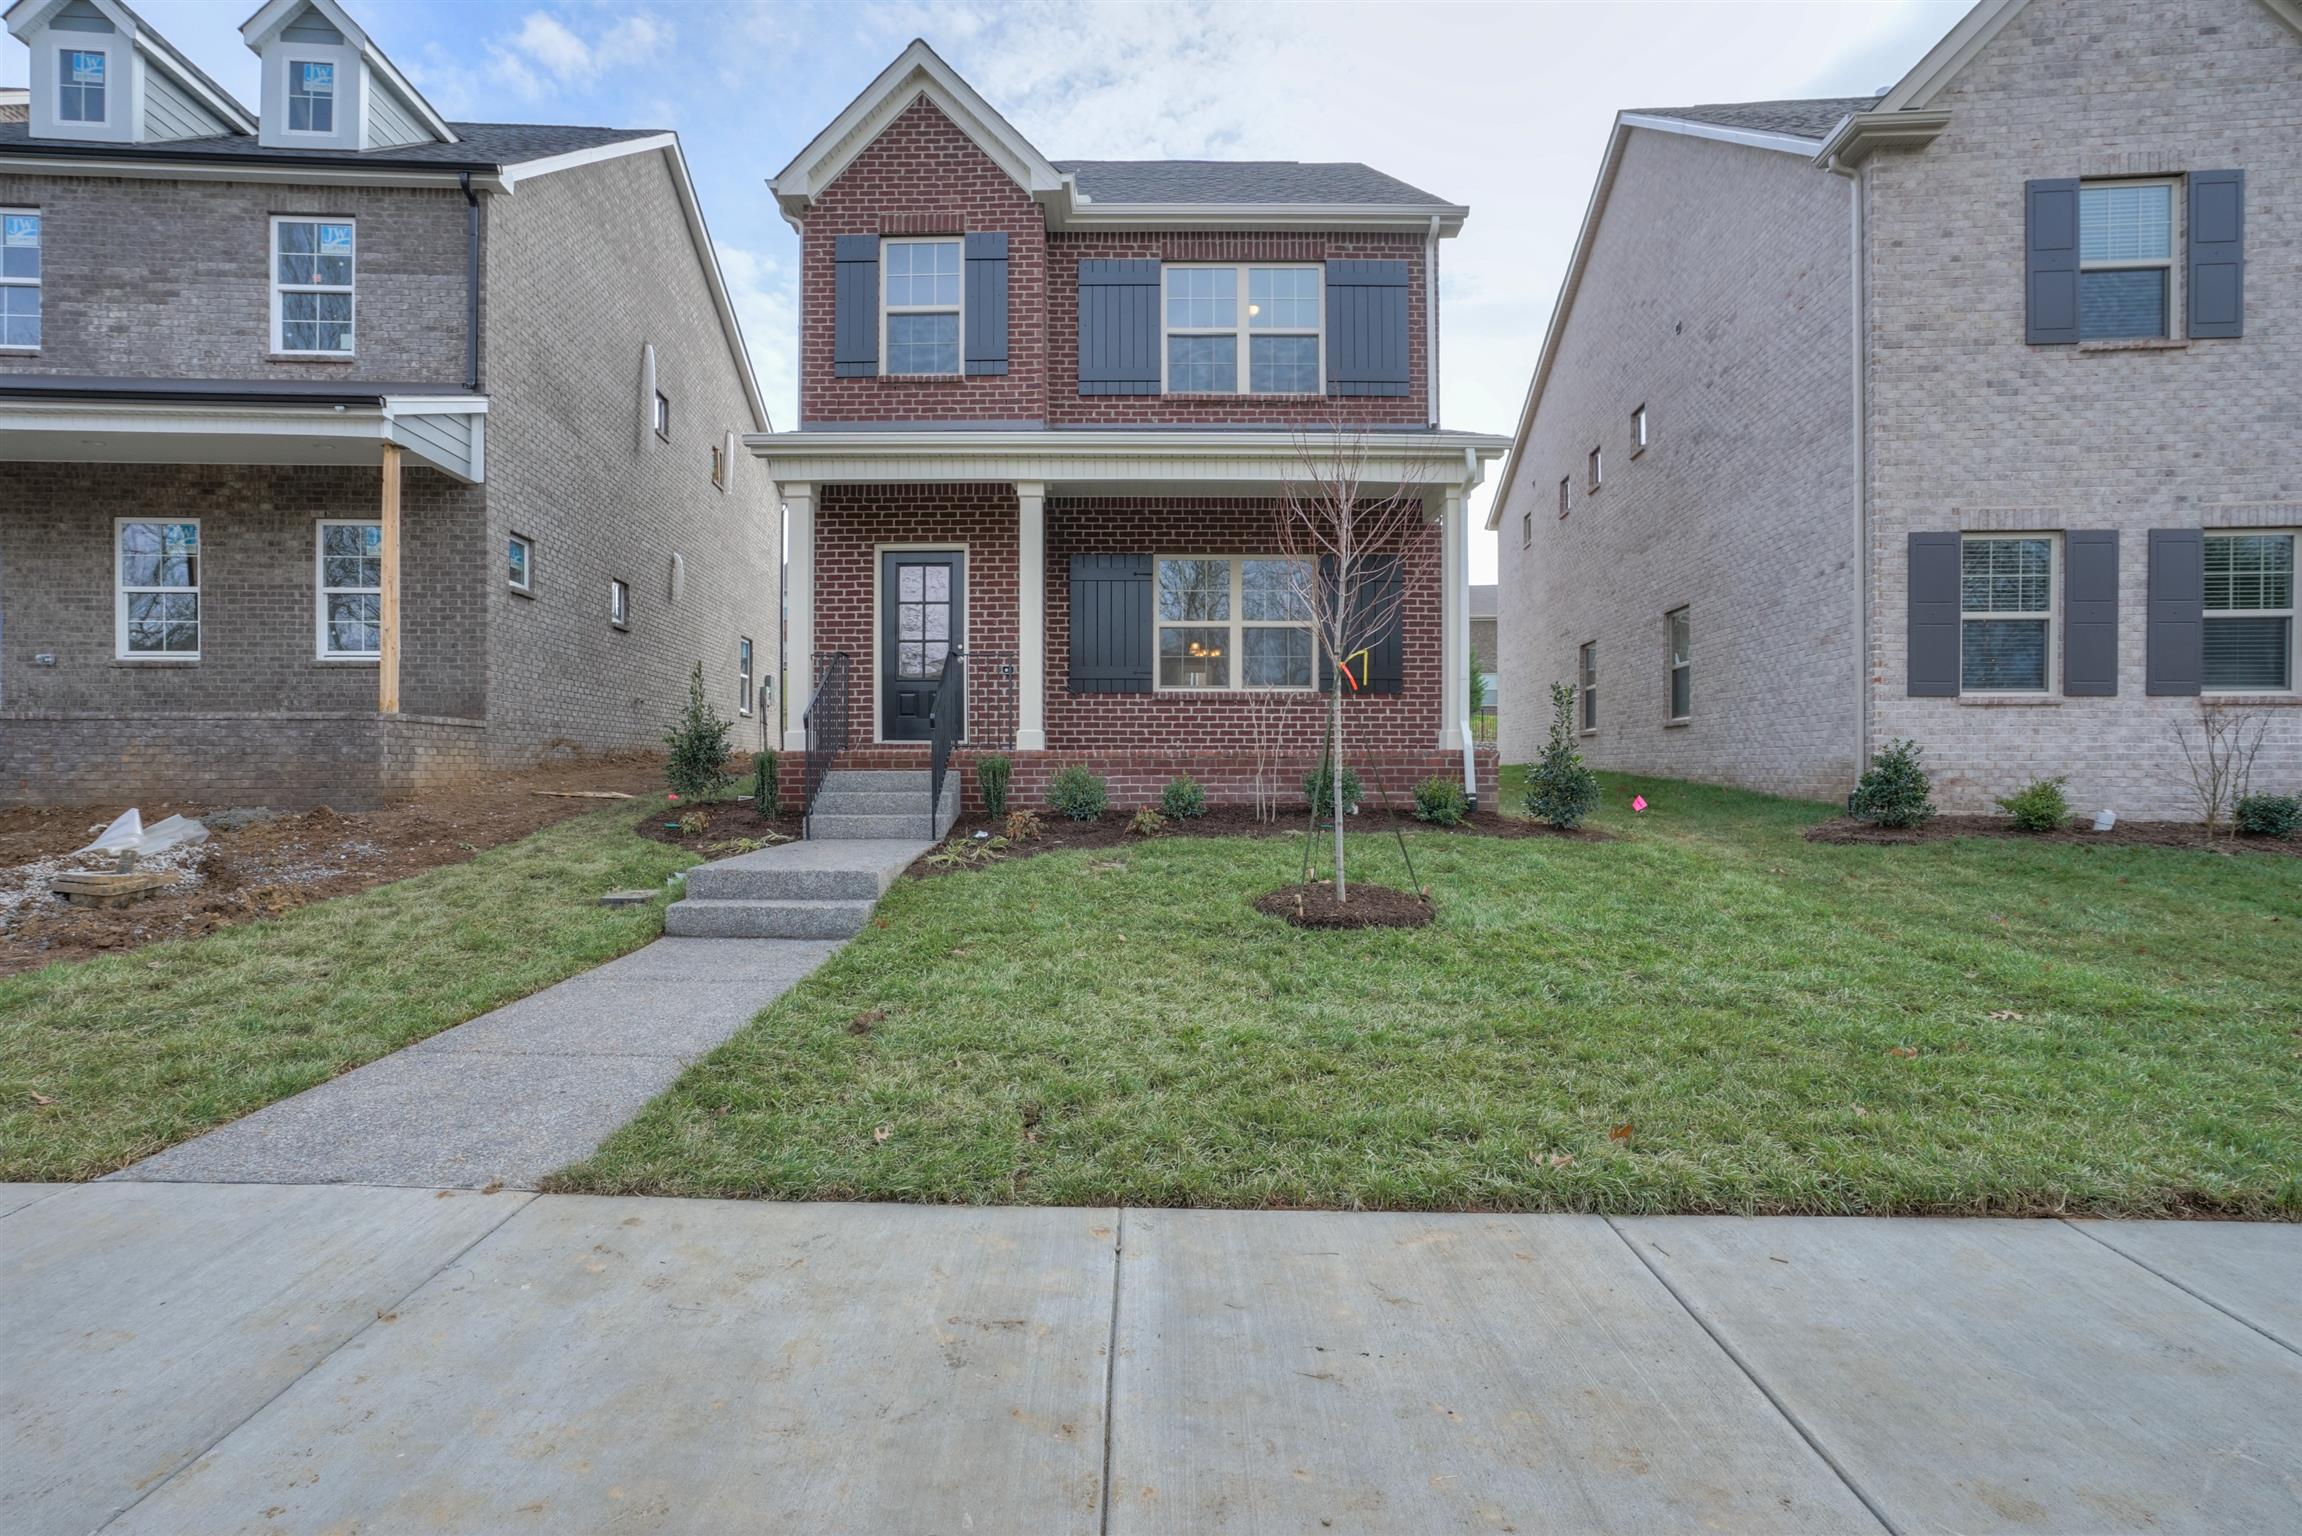 287 Carellton Drive (CC228) 37066 - One of Gallatin Homes for Sale